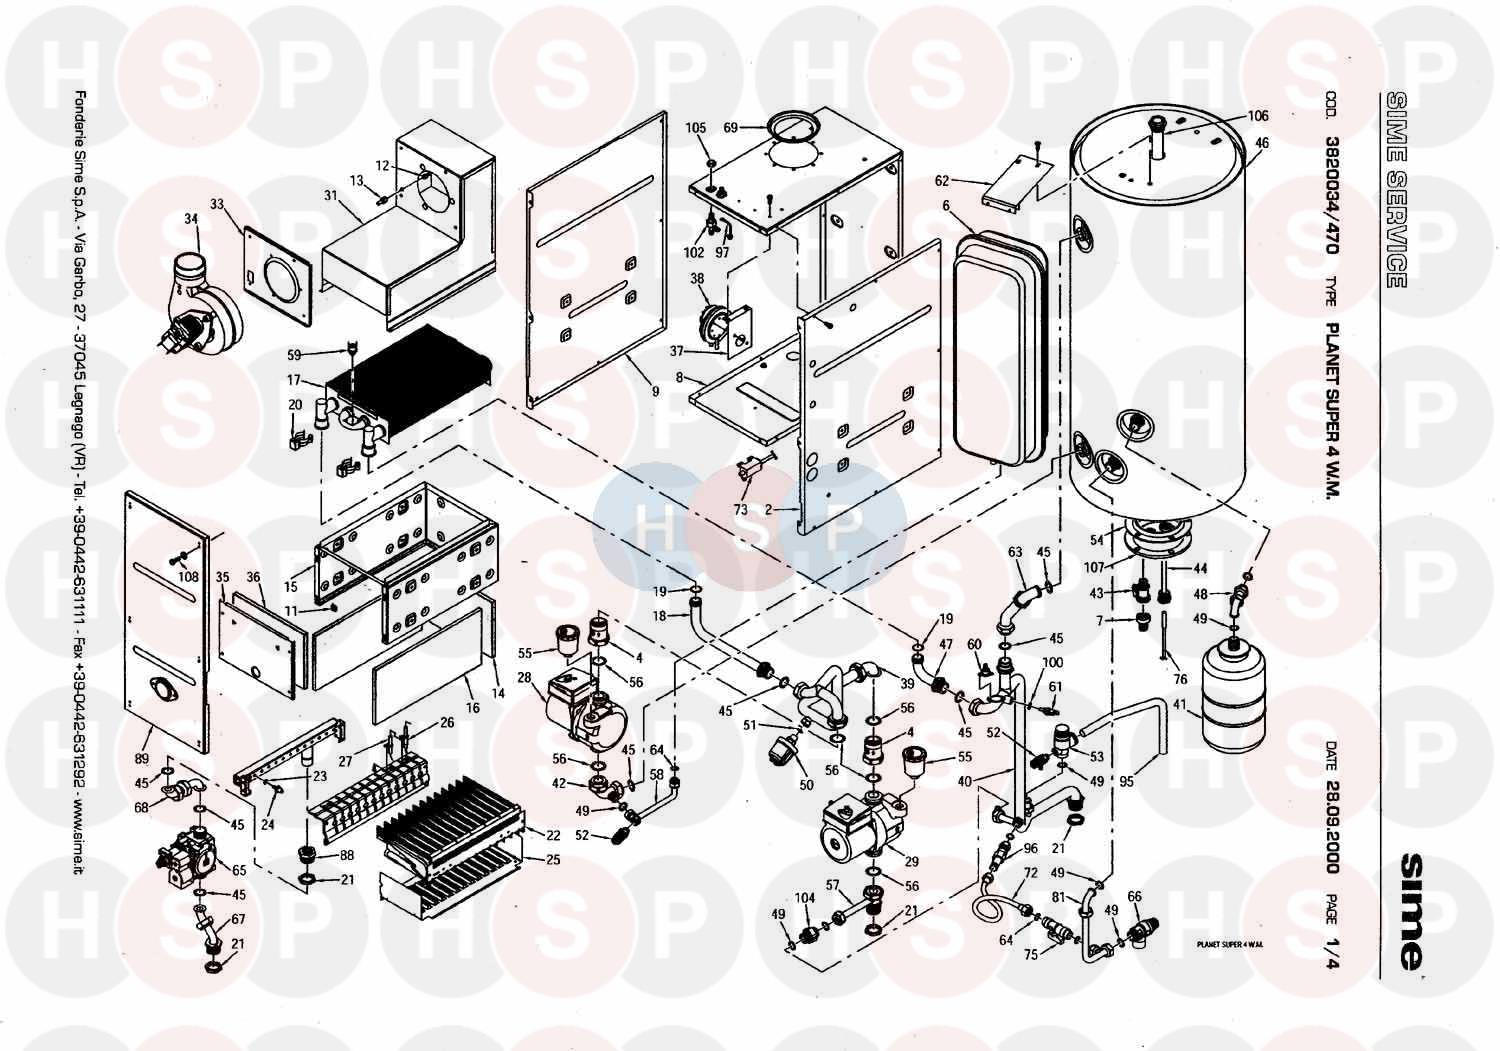 Sime PLANET SUPER 4 WM Appliance Diagram (BOILER ASEMBLY